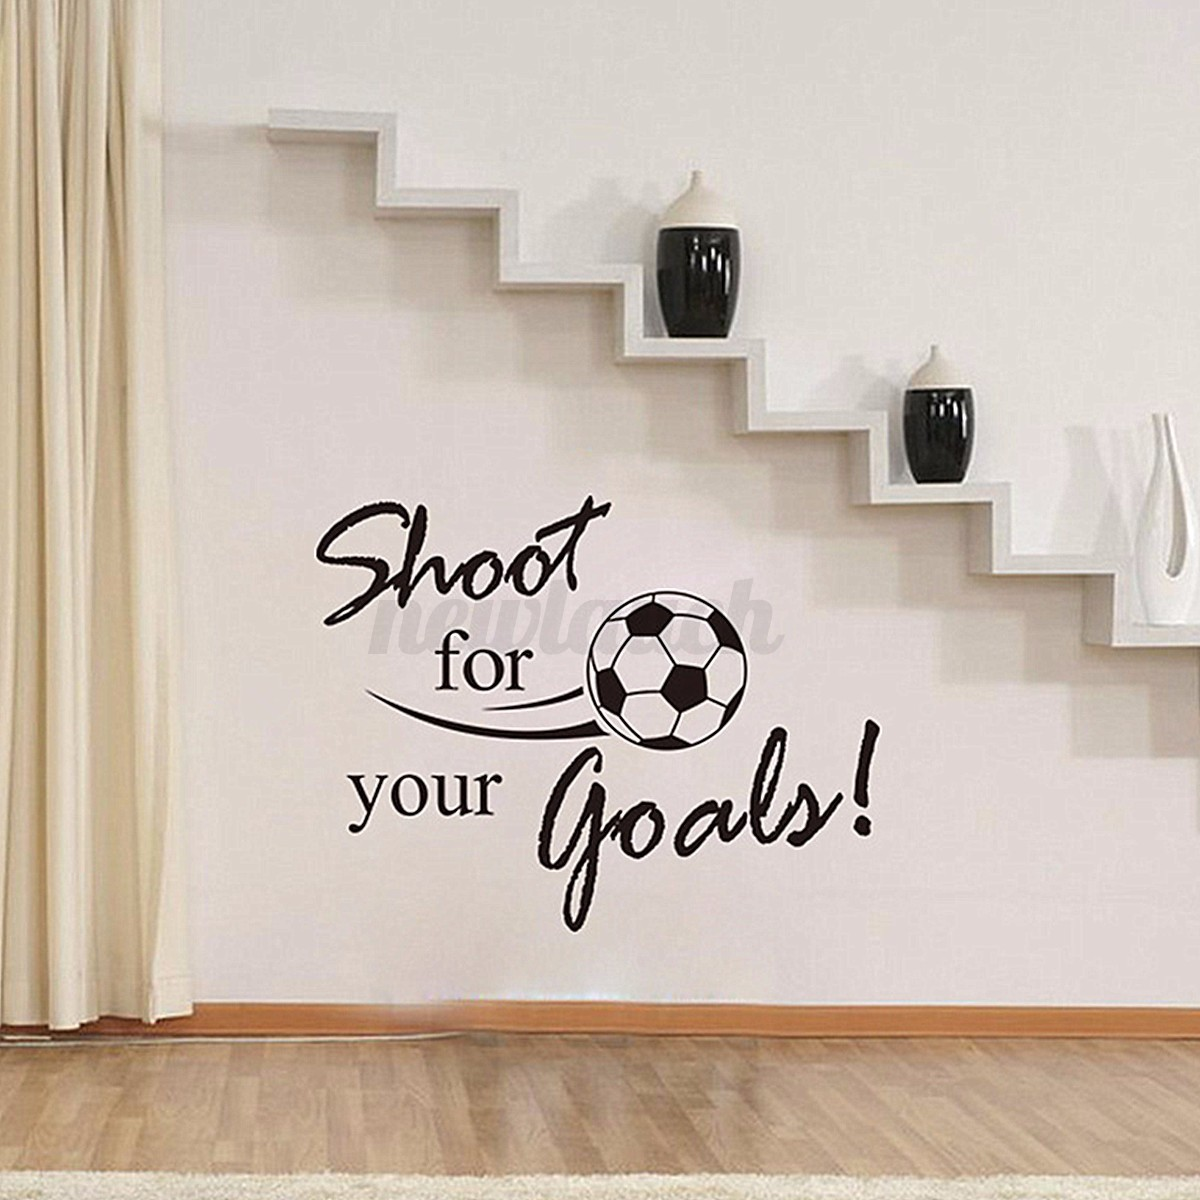 Wall Art Decals For Living Room: Removable Football Soccer Ball Letter Wall Stickers Art